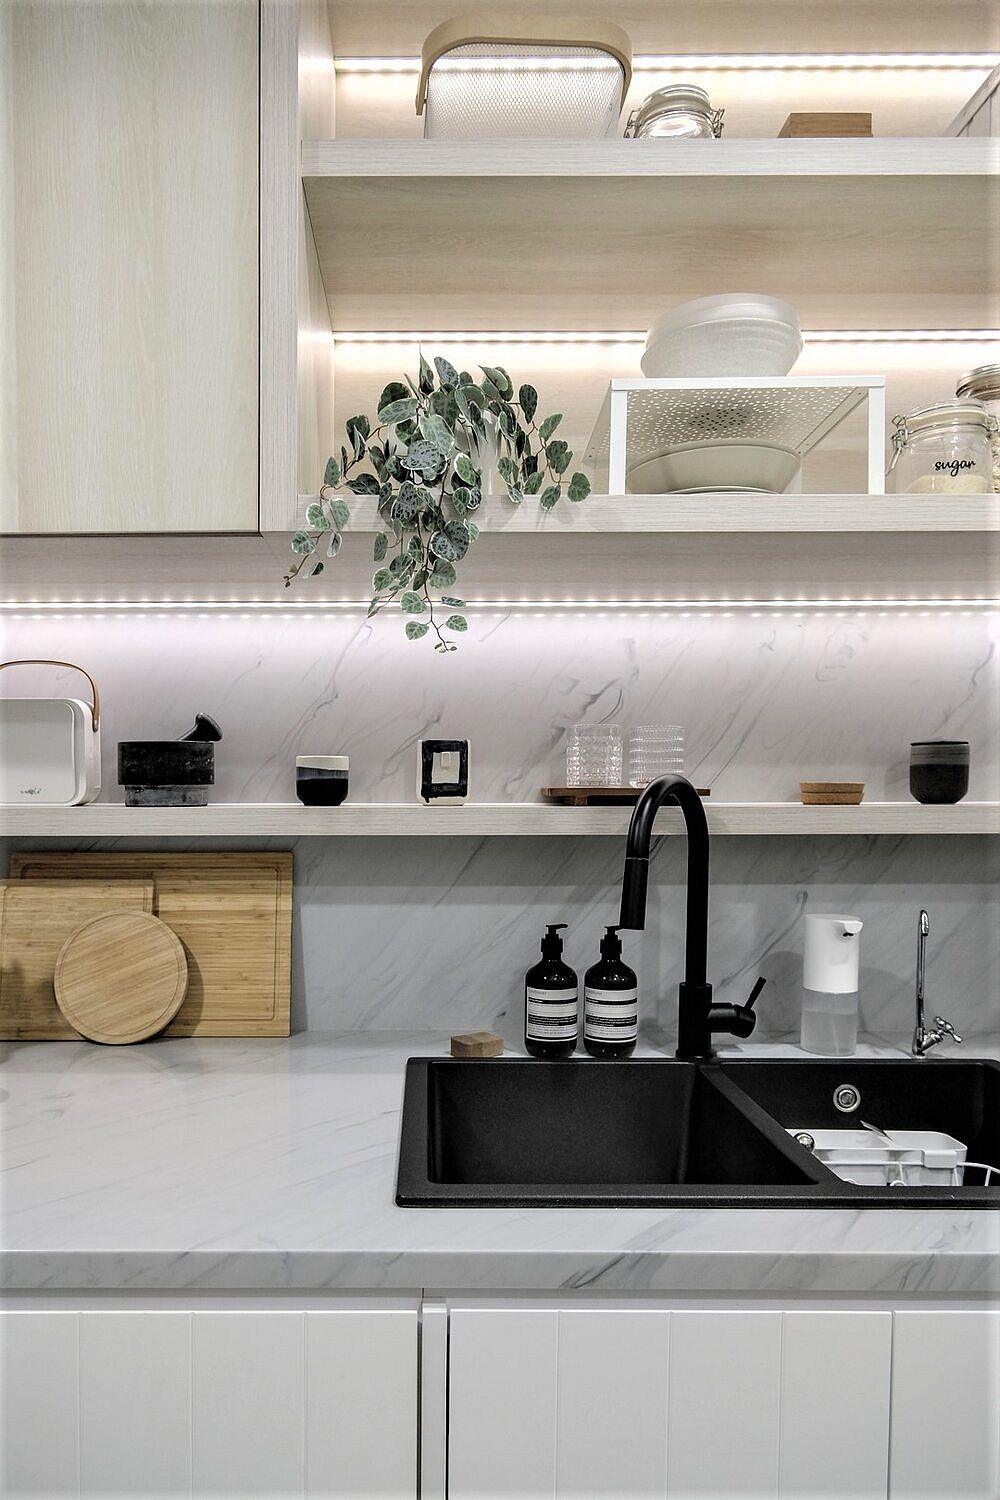 LED-strip-lights-under-the-shelf-adds-brightness-to-the-kitchen-in-neutral-hues-73002